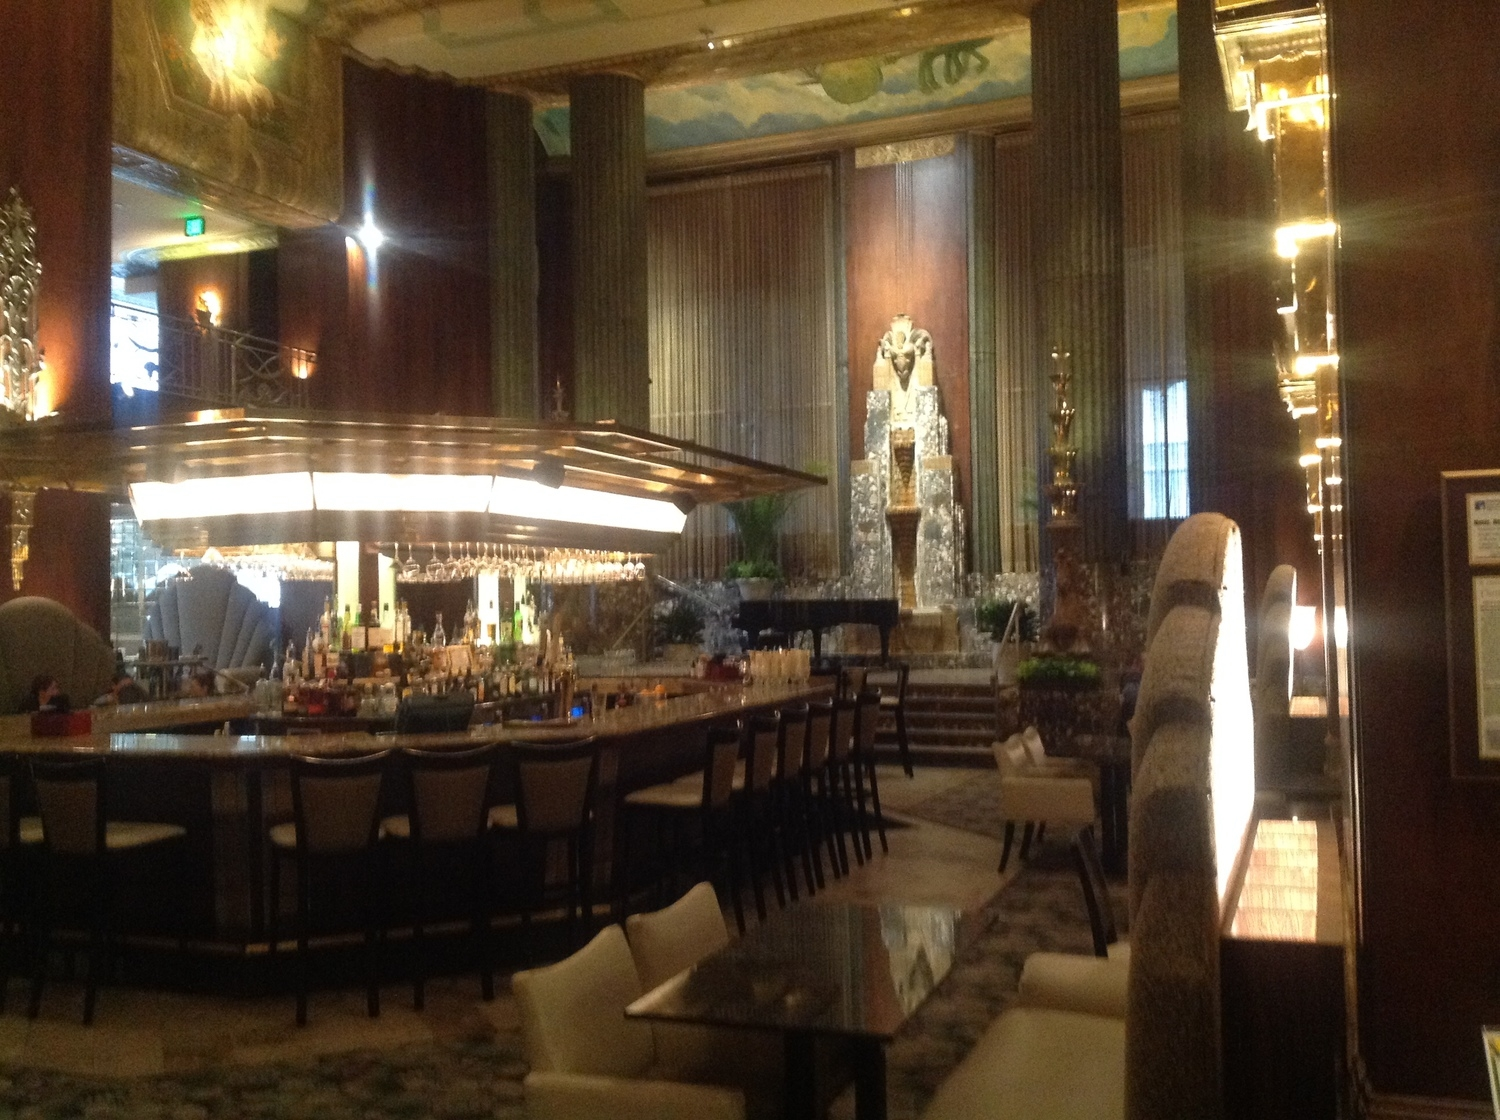 "I spoke about ""American Queen"" on March 24 before about 100 people at the Cincinnati History Museum. While there, I stayed in the hotel in Cincinnati's beautiful old Art Deco skyscraper, the Carew Tower. This is the hotel's Palm Court, which looks like something out of a 1930s Hollywood movie."